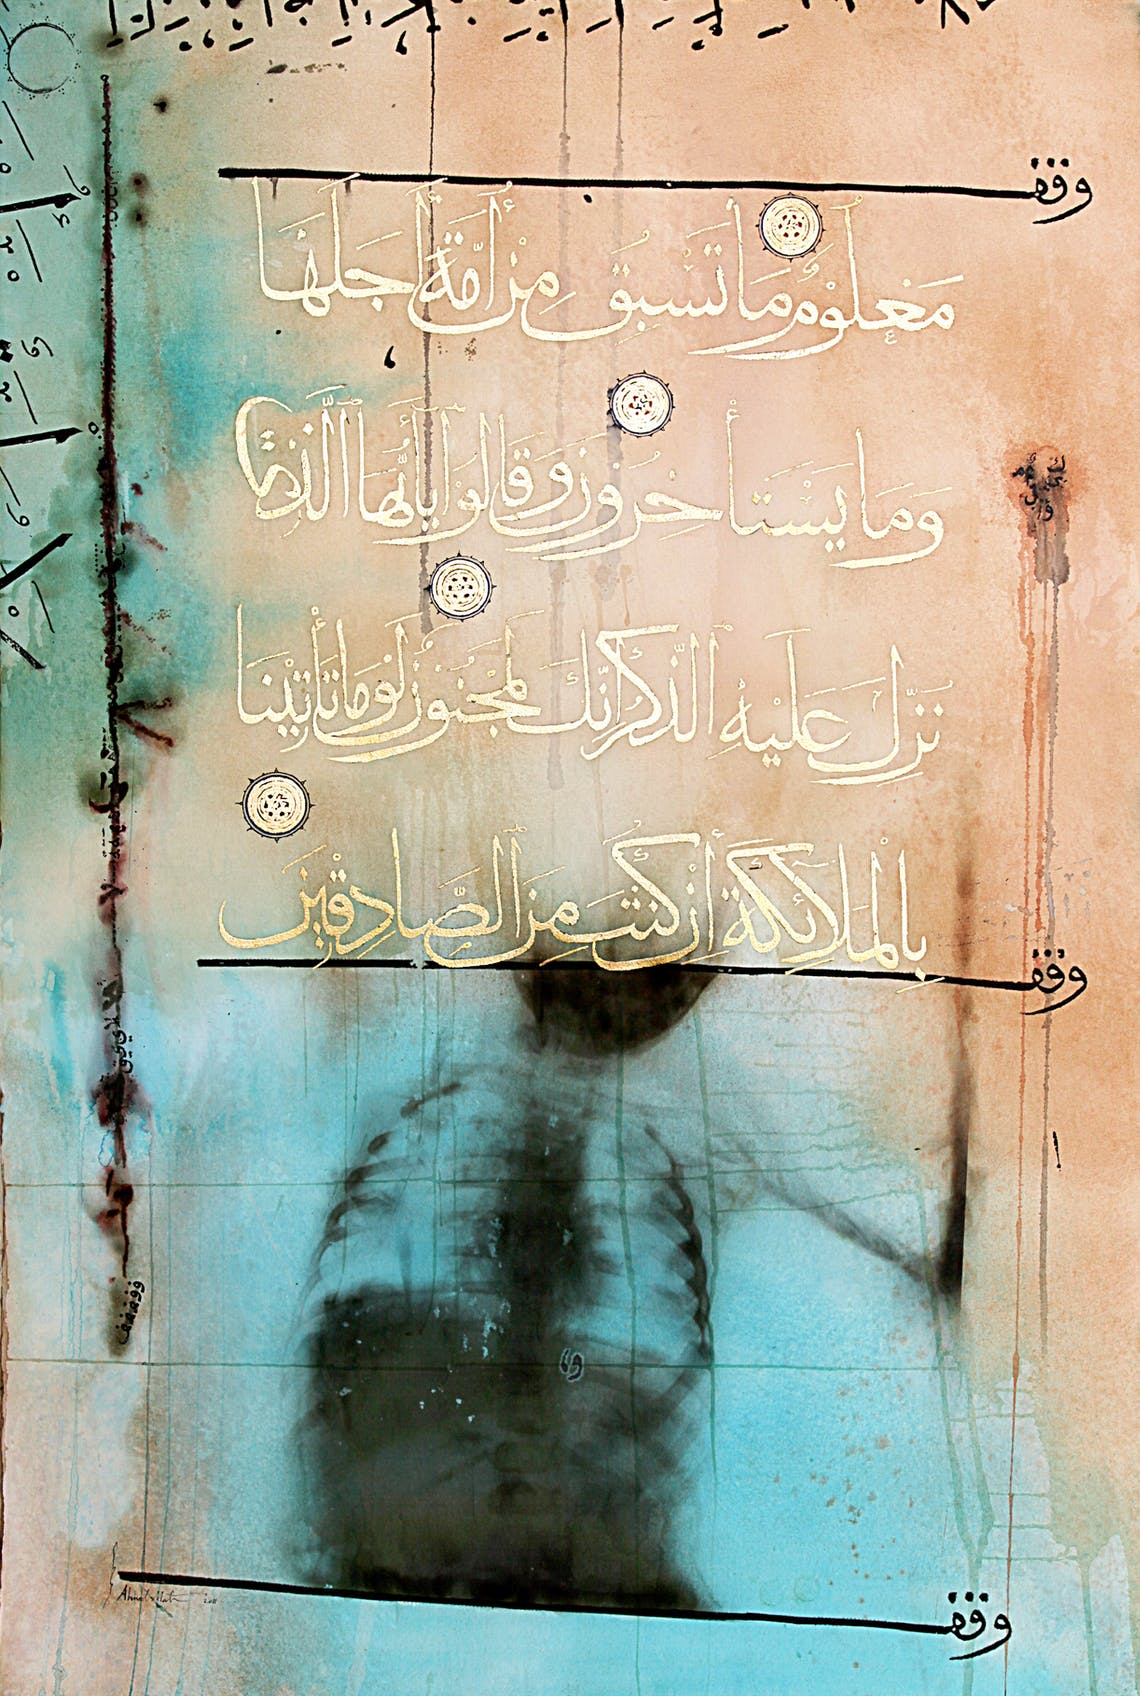 Tholoth Mashq Illumination 2010 Ahmed Mater Gold lead tea pomegranate Dupont Chinese ink and offset X Ray print and mixed media on archival Arche paper 155 x 105 tagori mashq